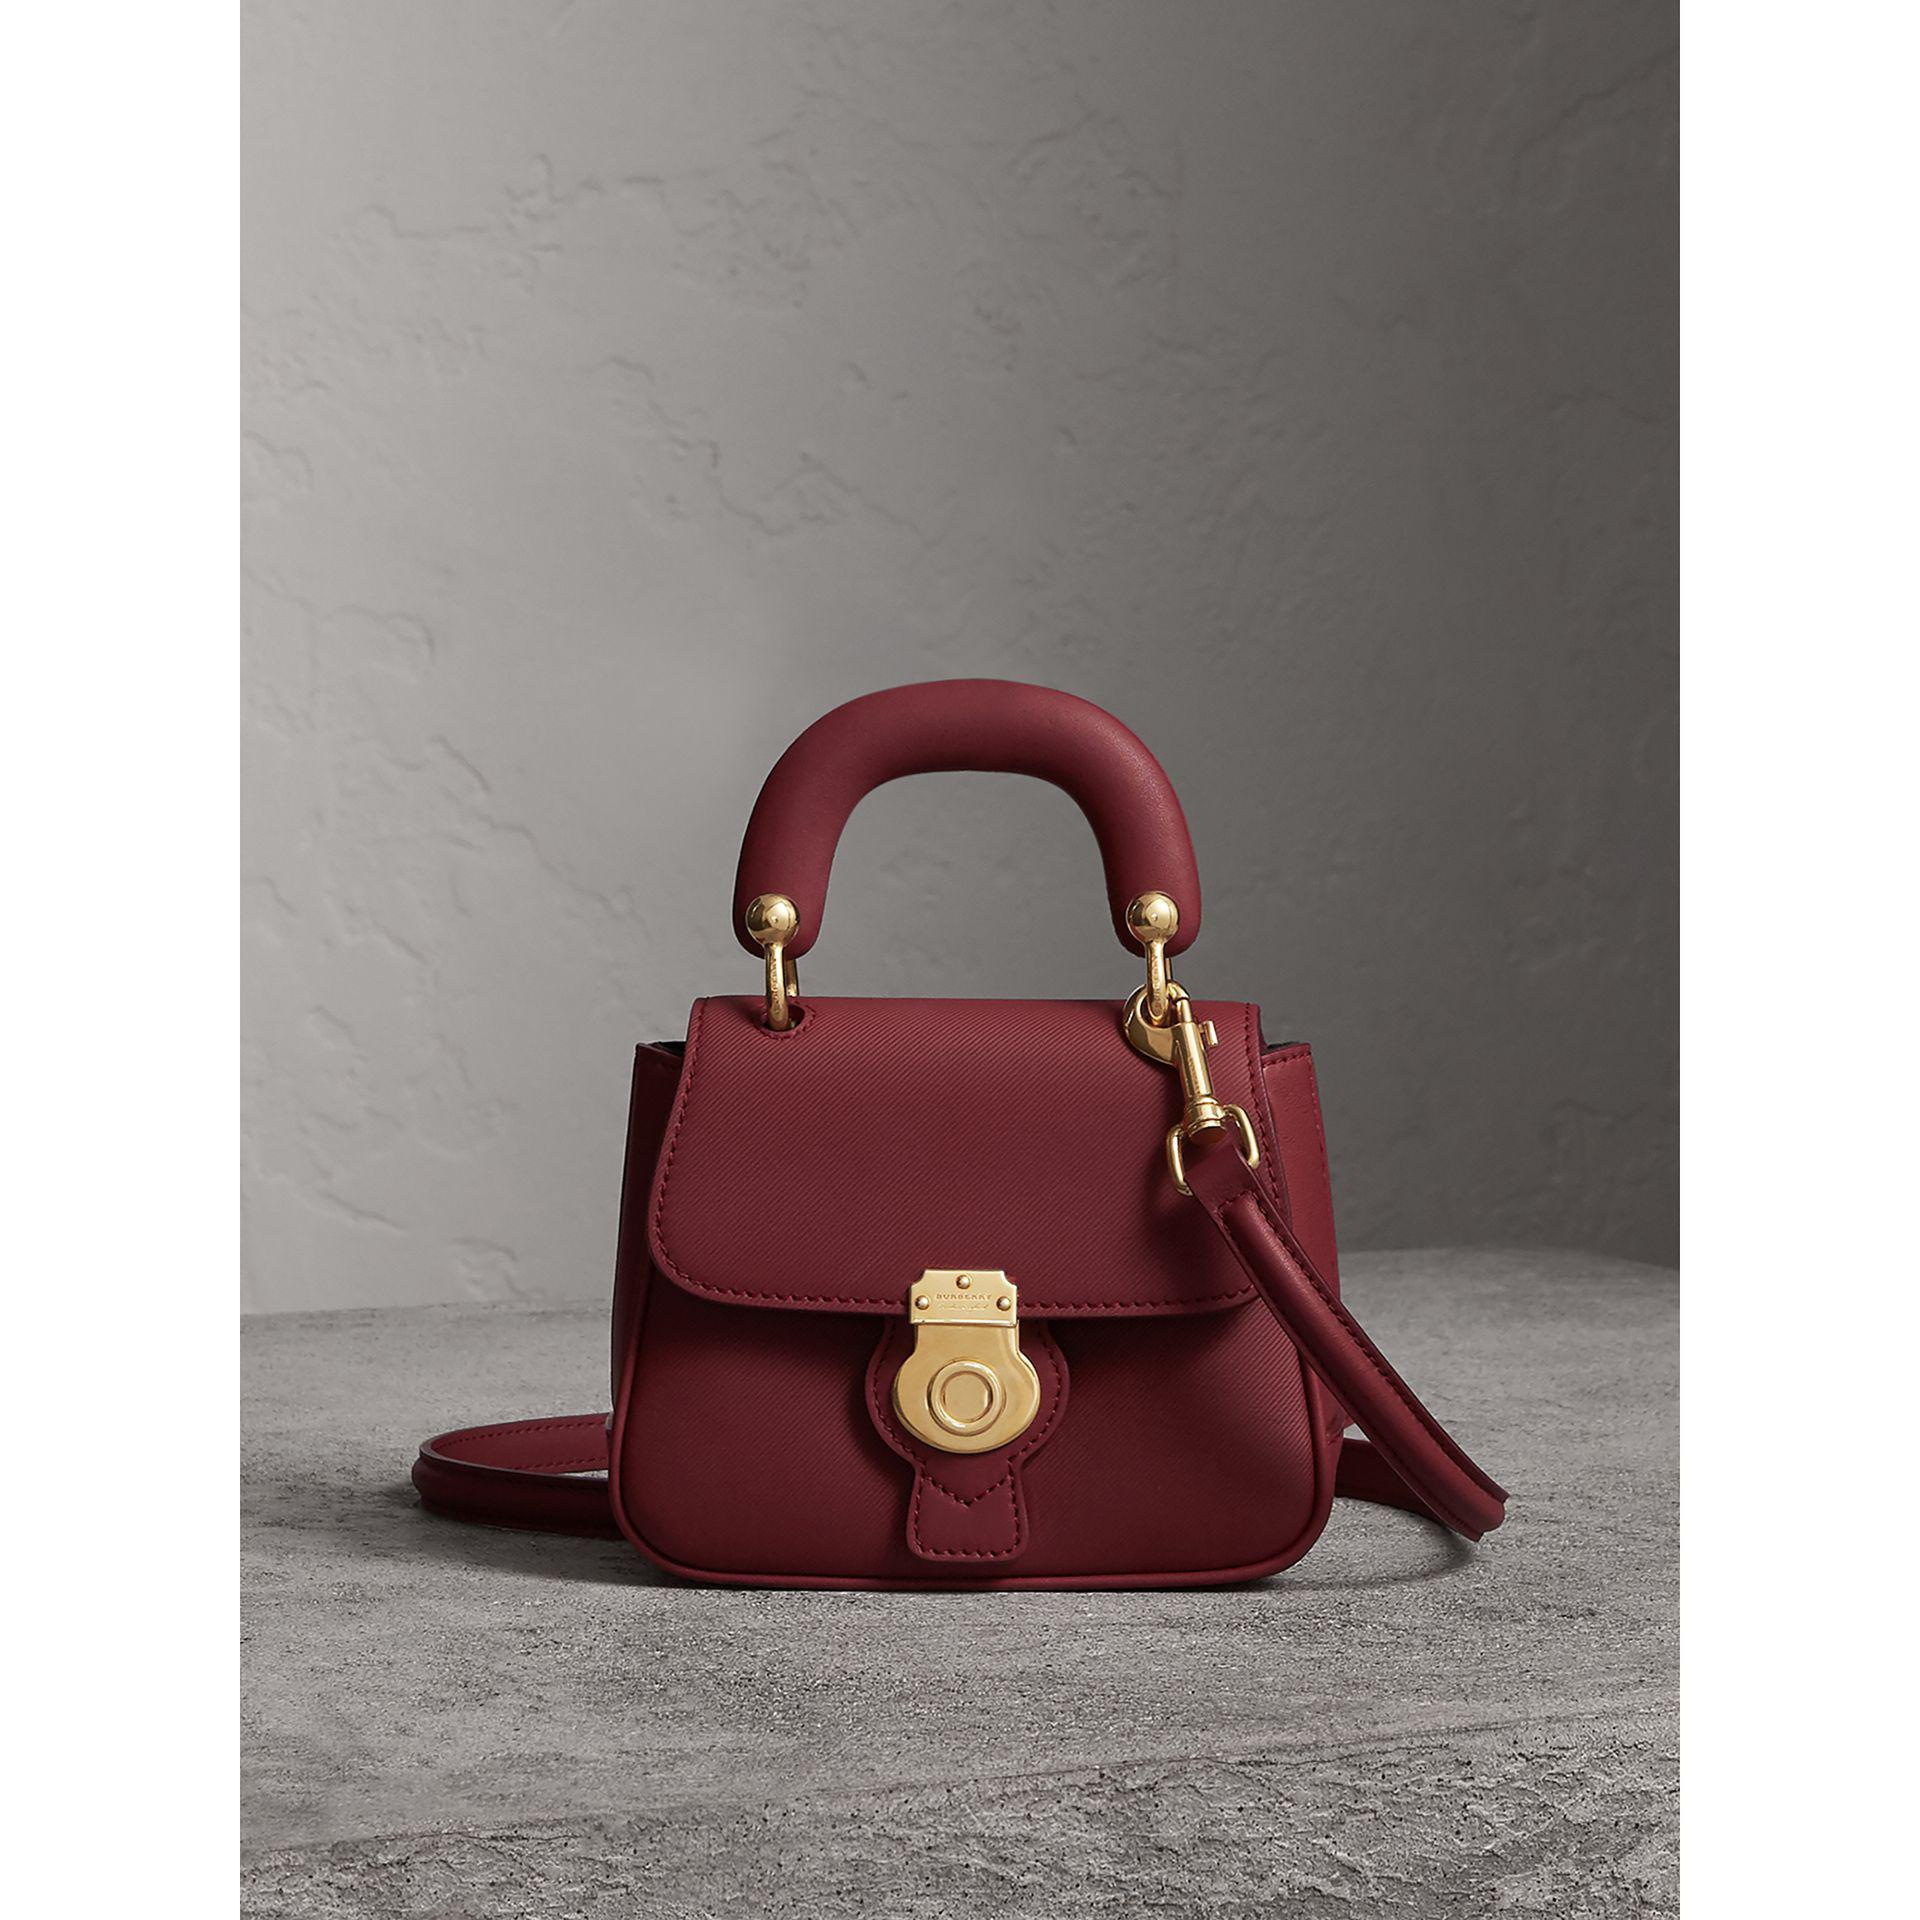 9255f0f8c51f Burberry The Mini Dk88 Top Handle Bag In Antique Red